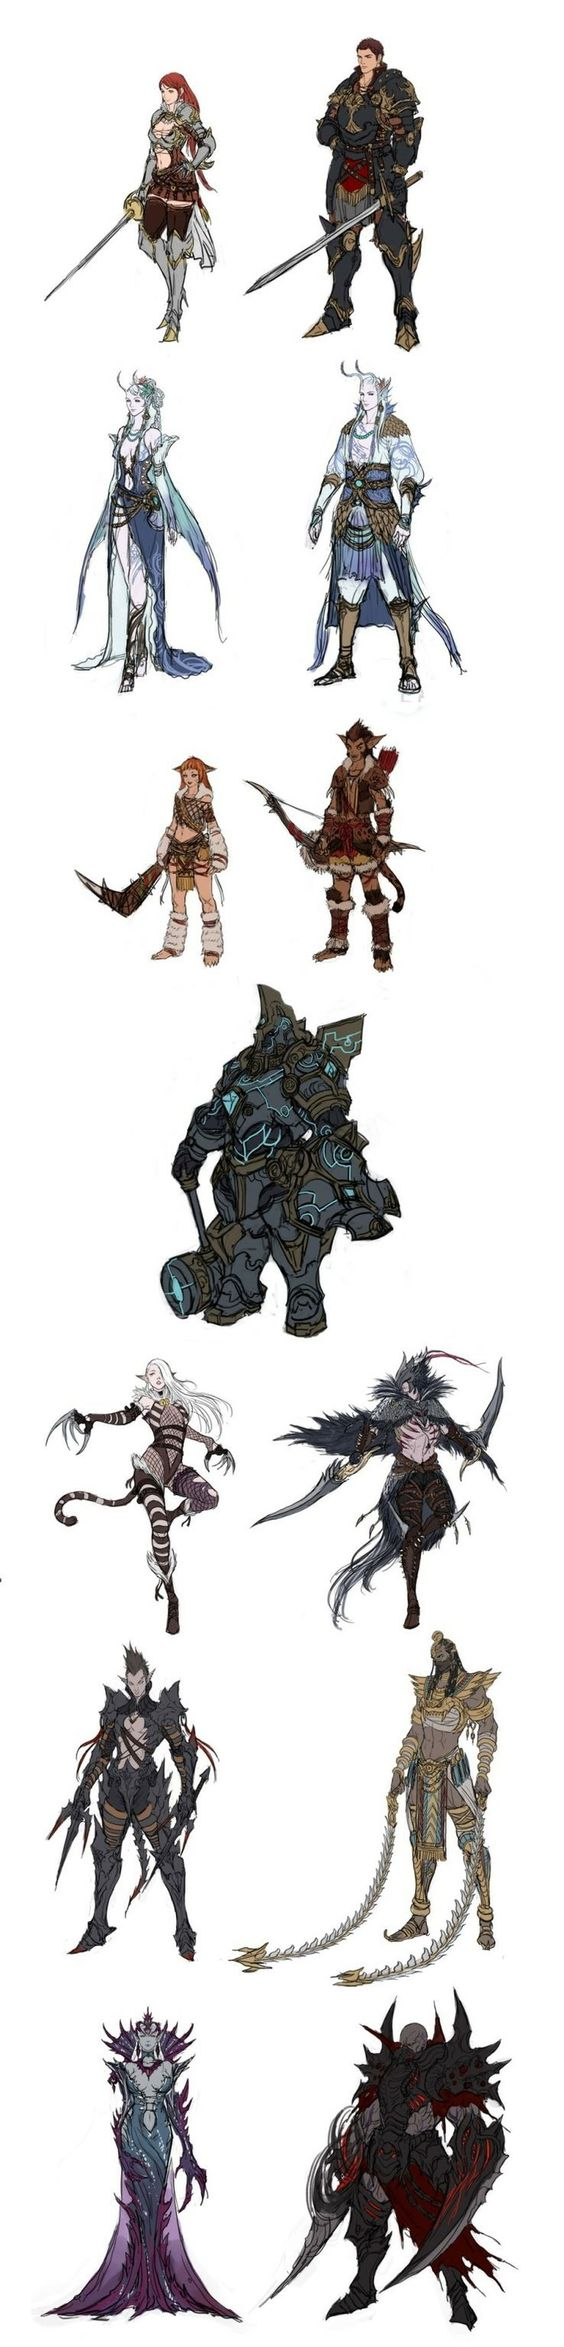 Character Design Dnd : Game character design create your own roleplaying